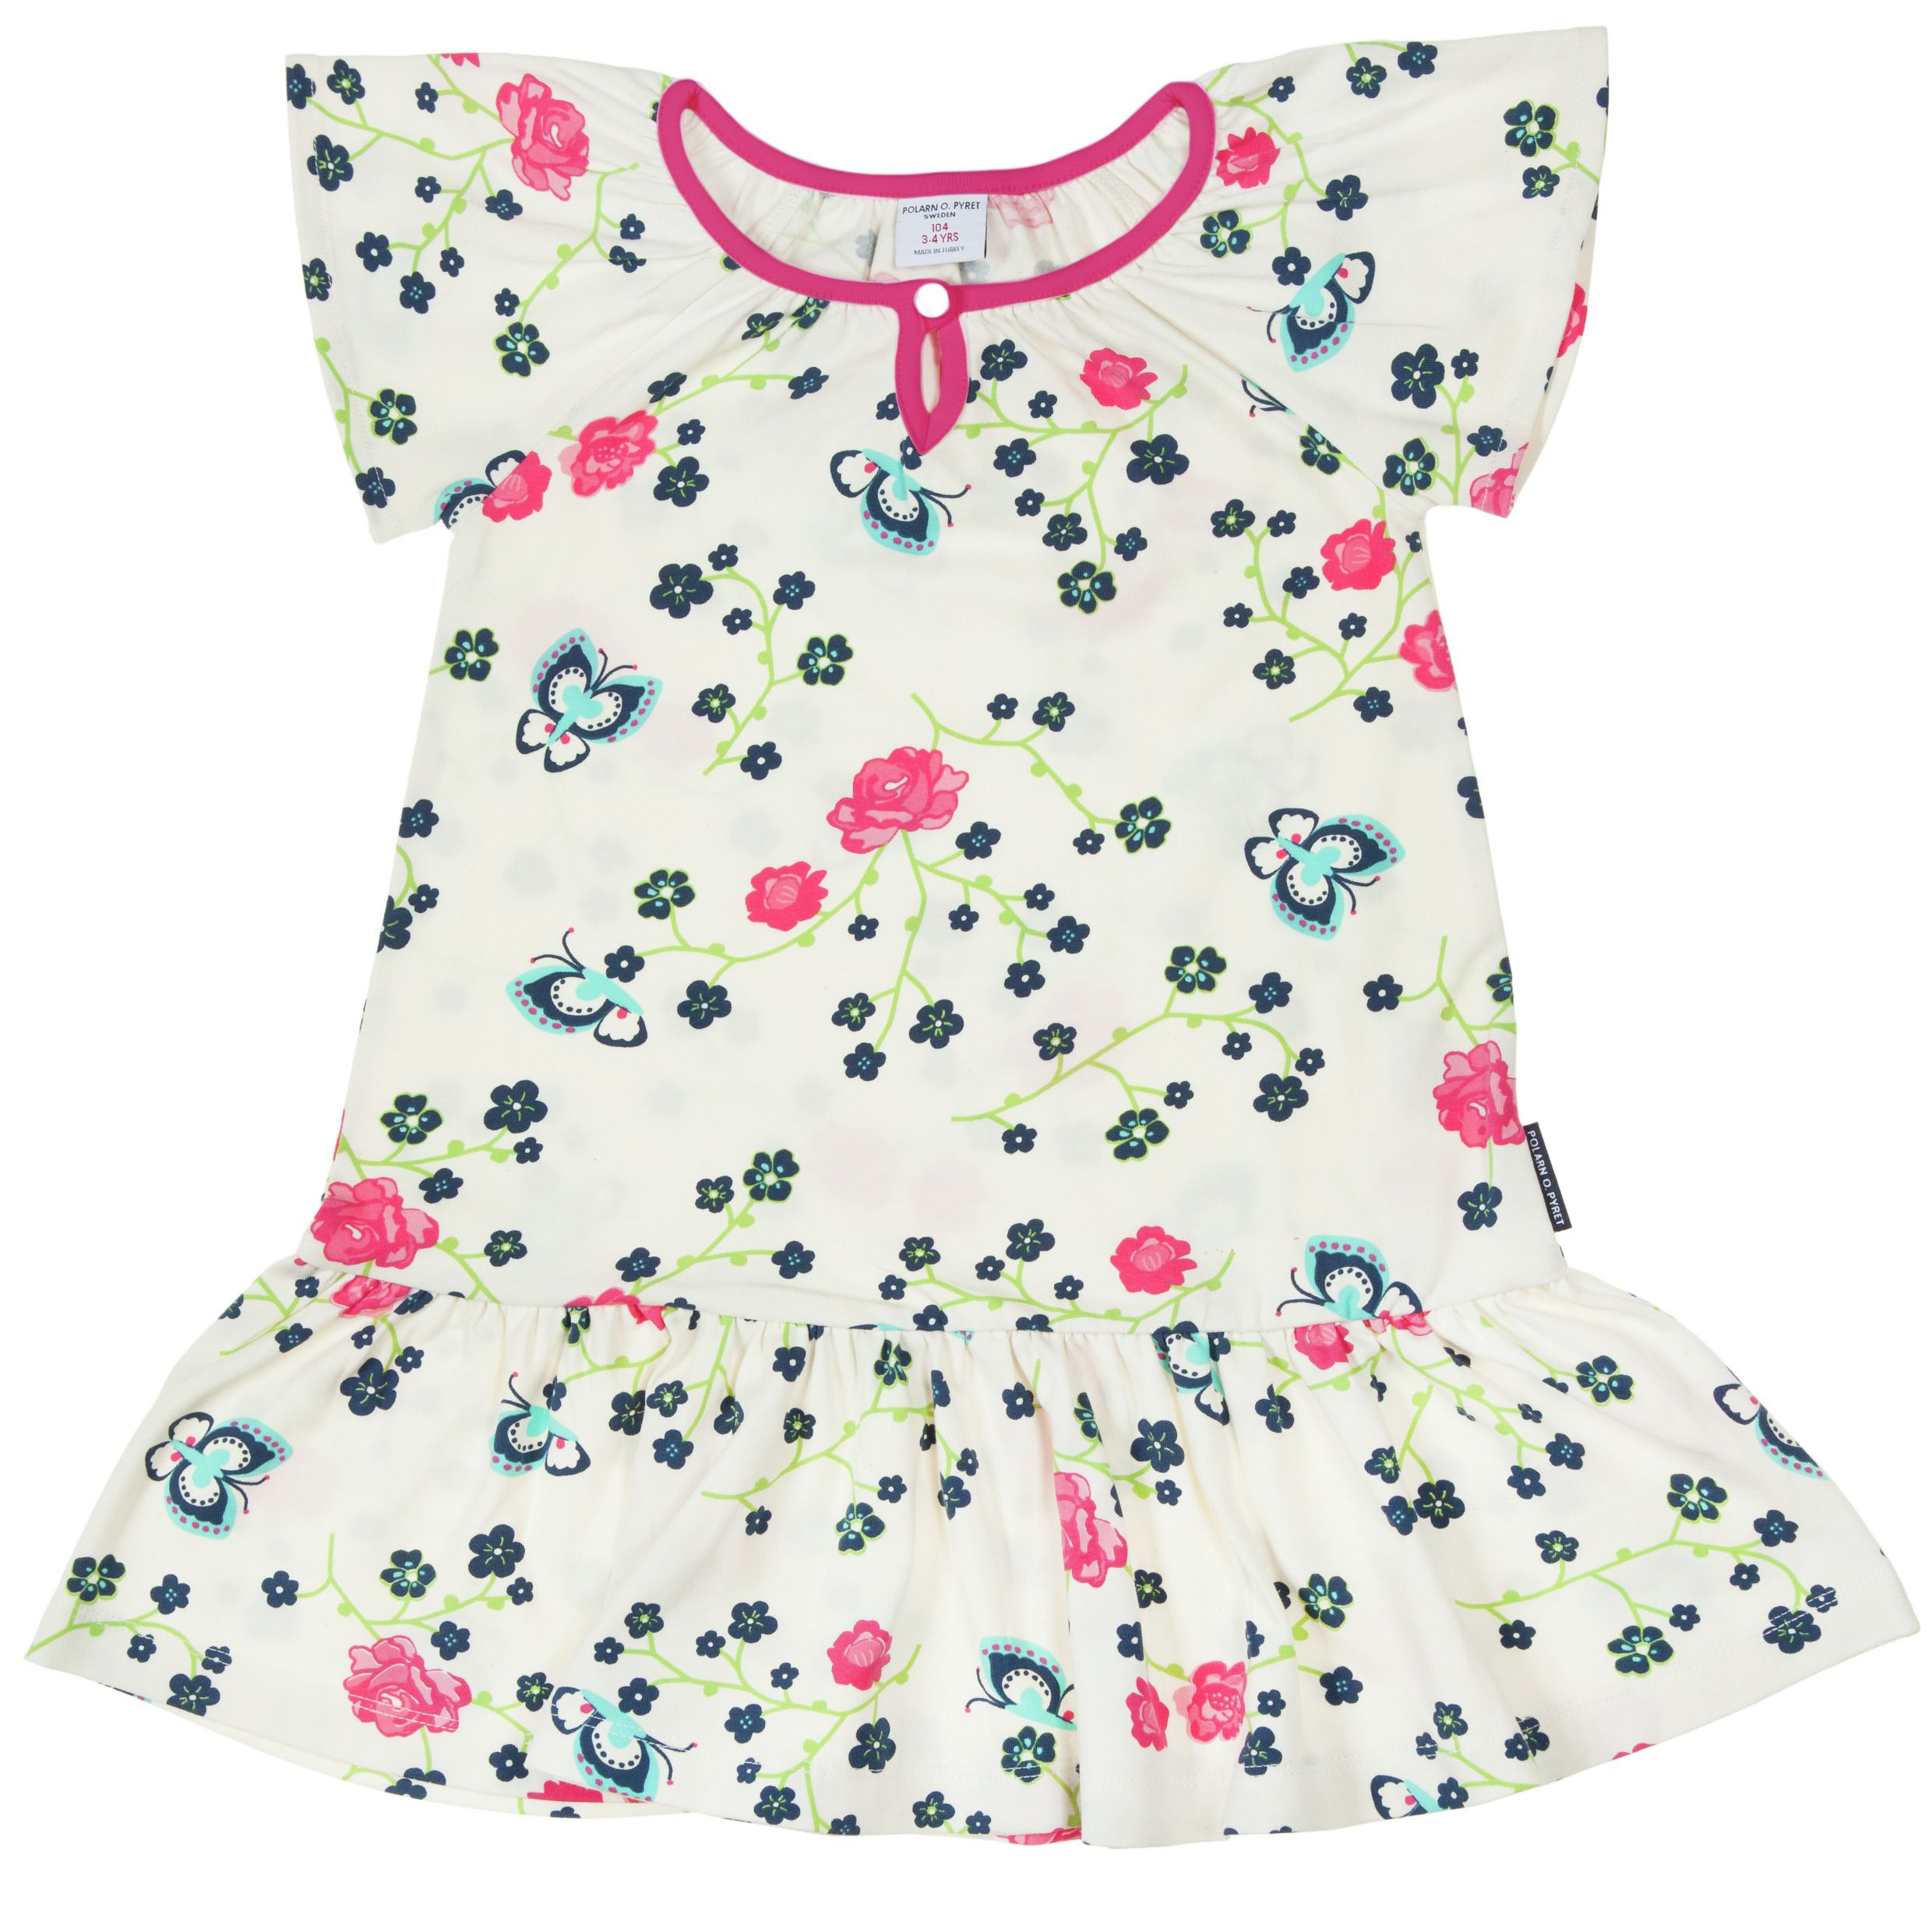 Girls summer flower dress